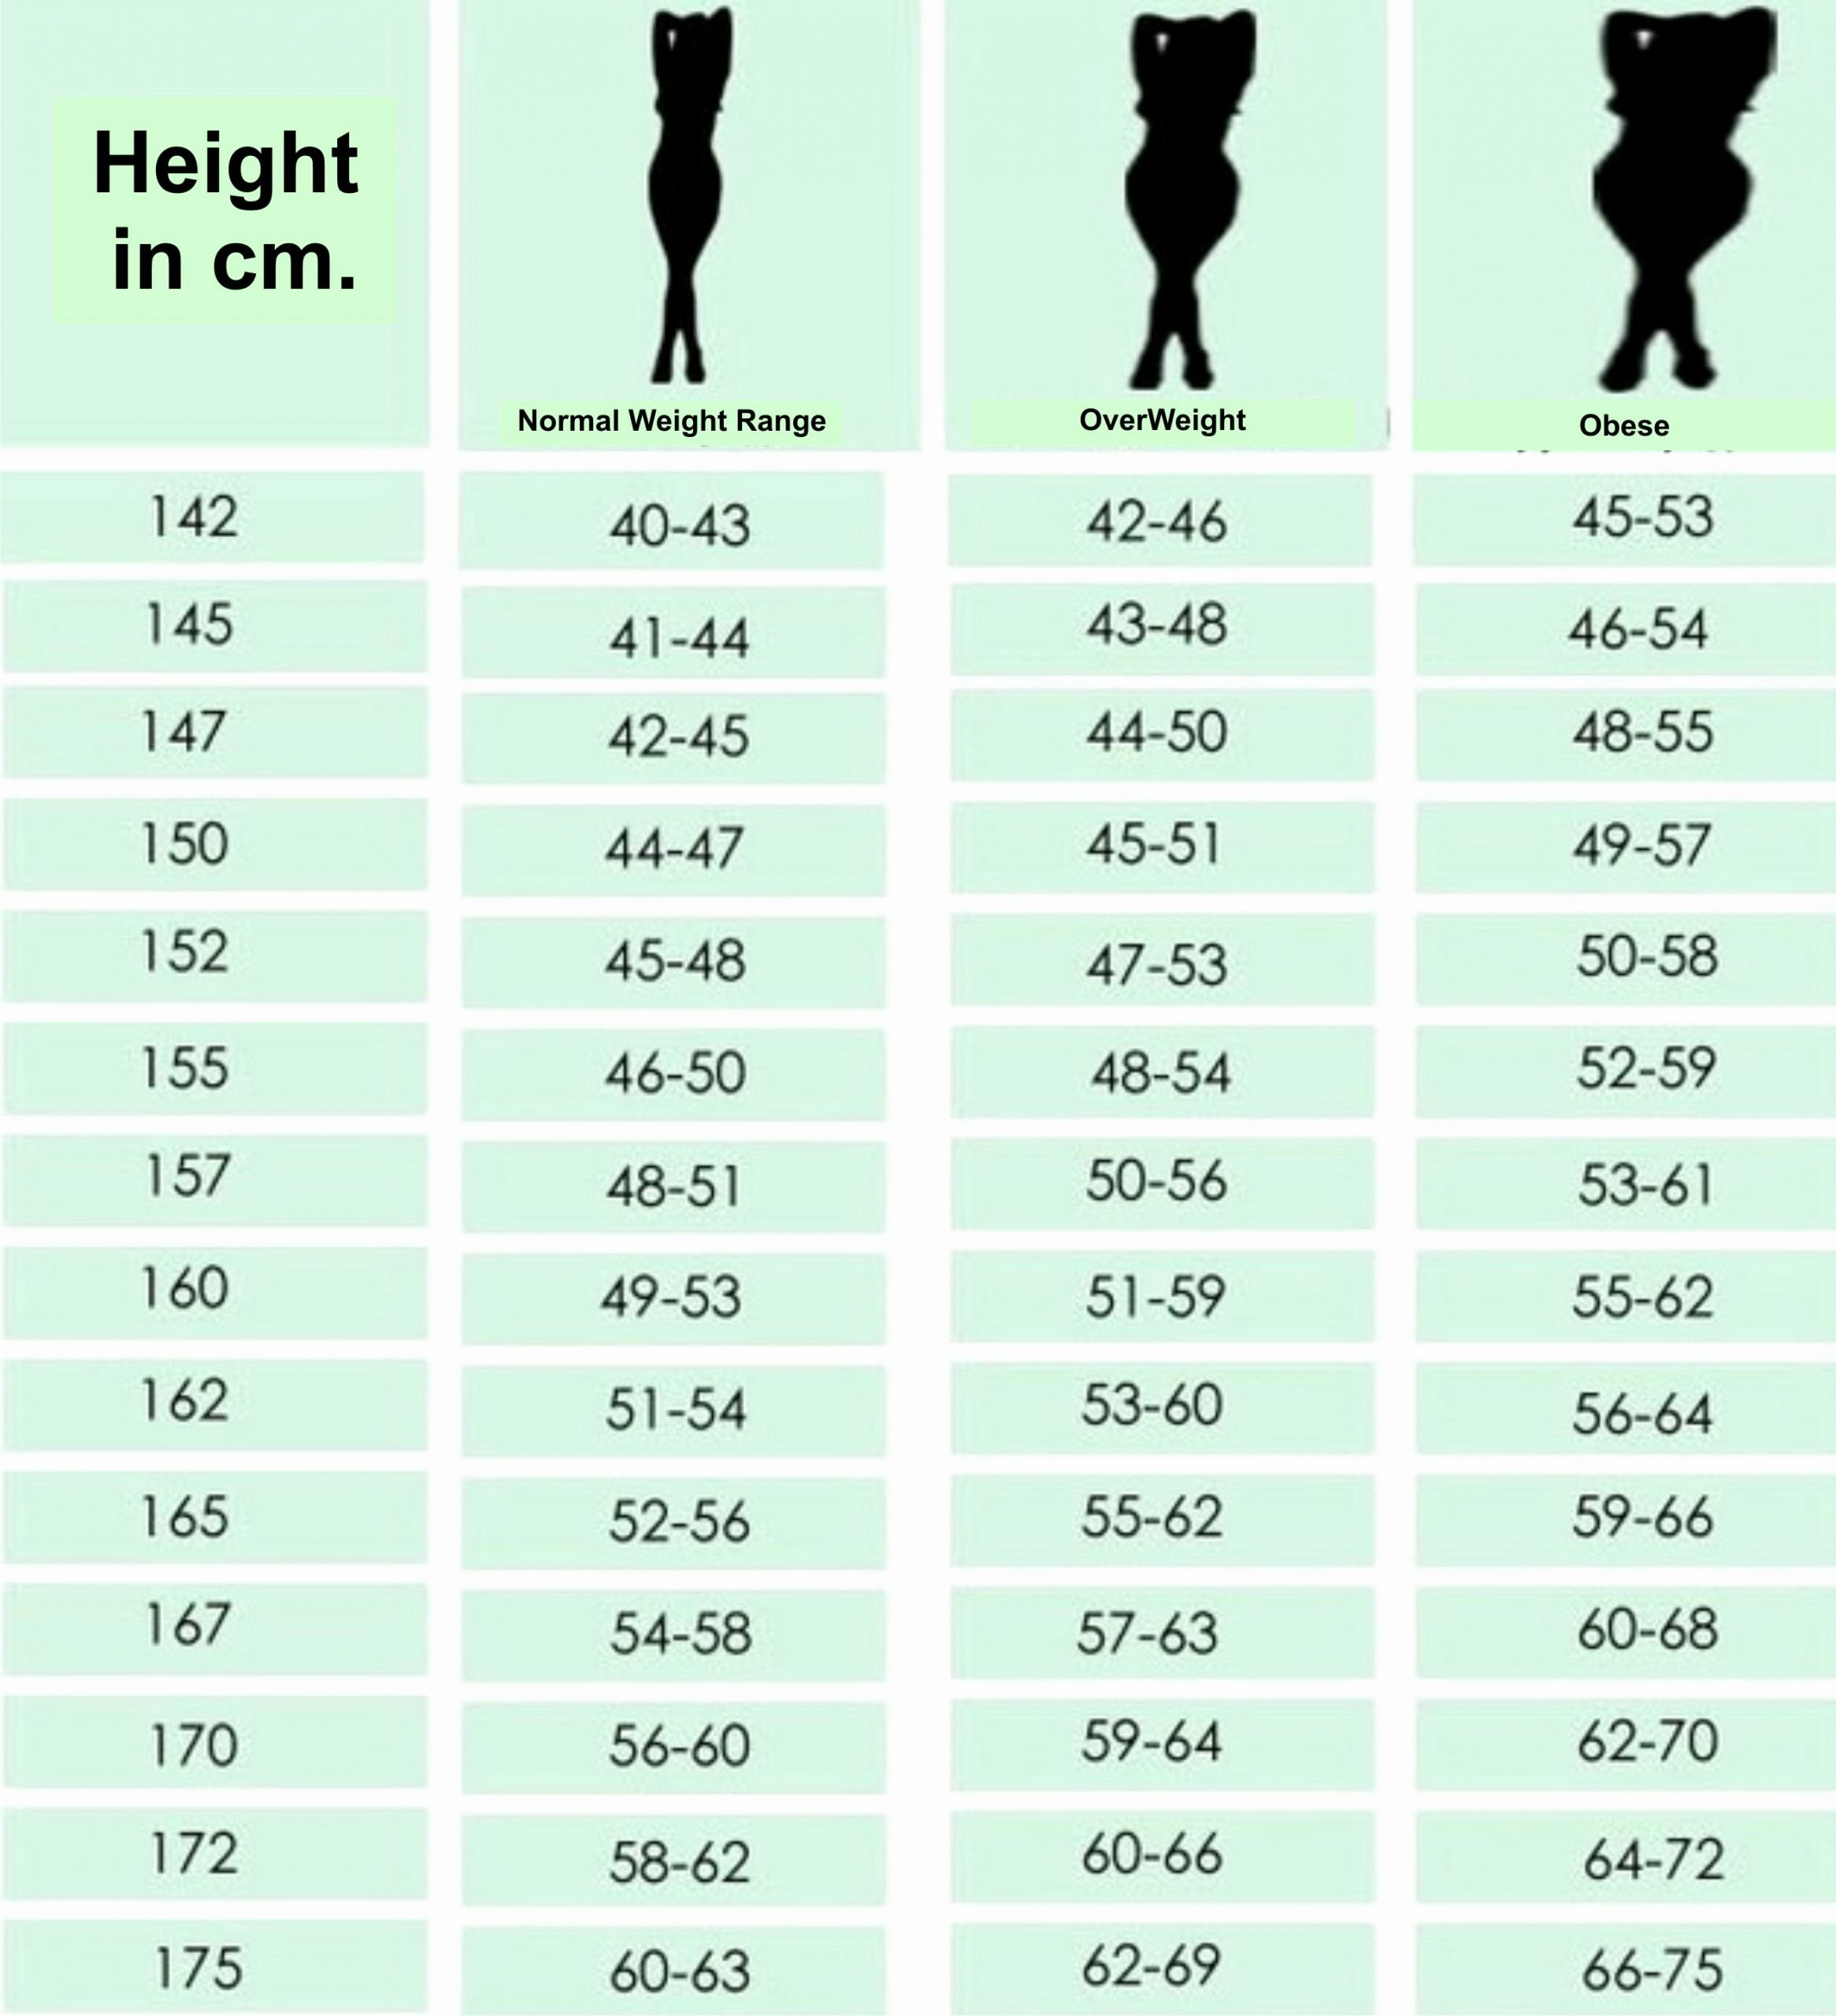 Height and Weight Chart 2016 Elegant Chart for Women According to Height What is Your Ideal